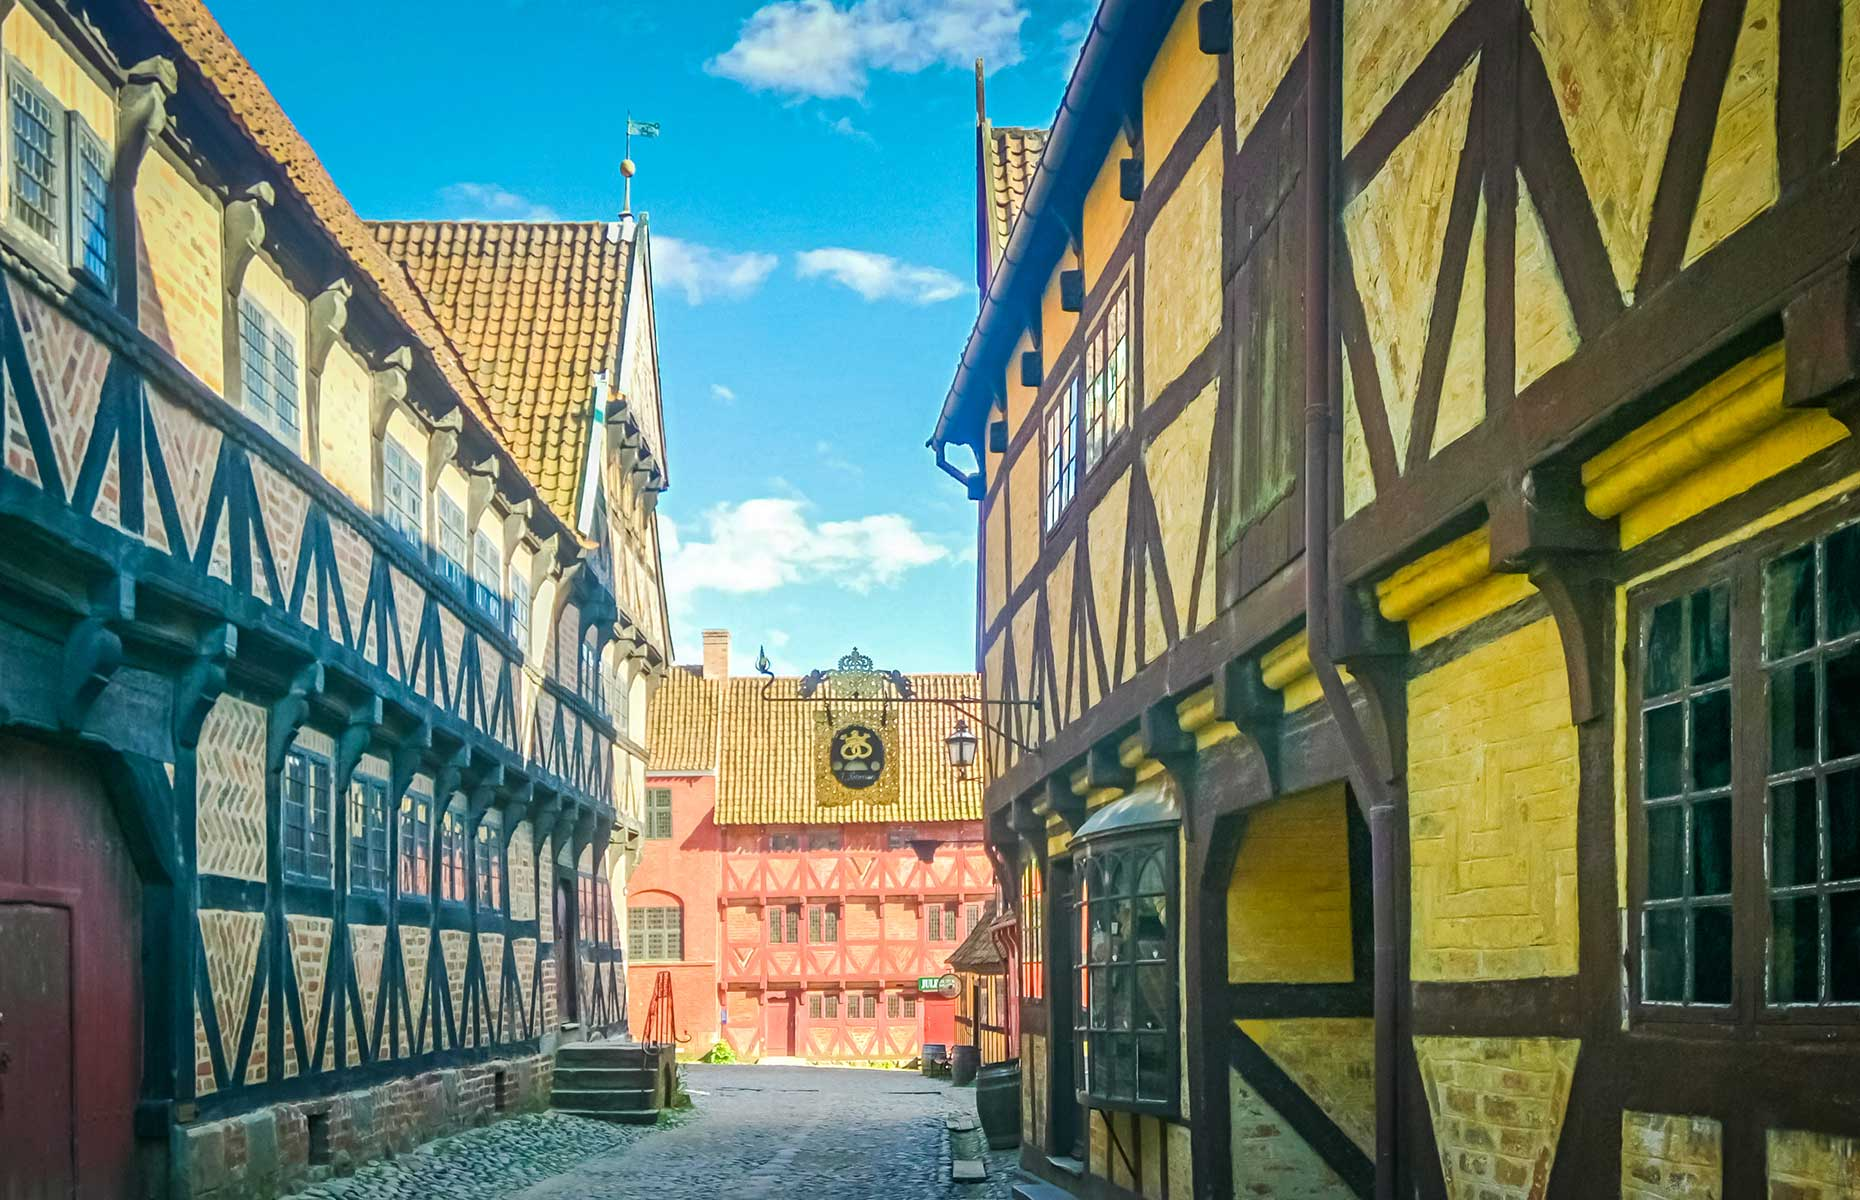 Den Gamle By showcases Medieval Scandi streets